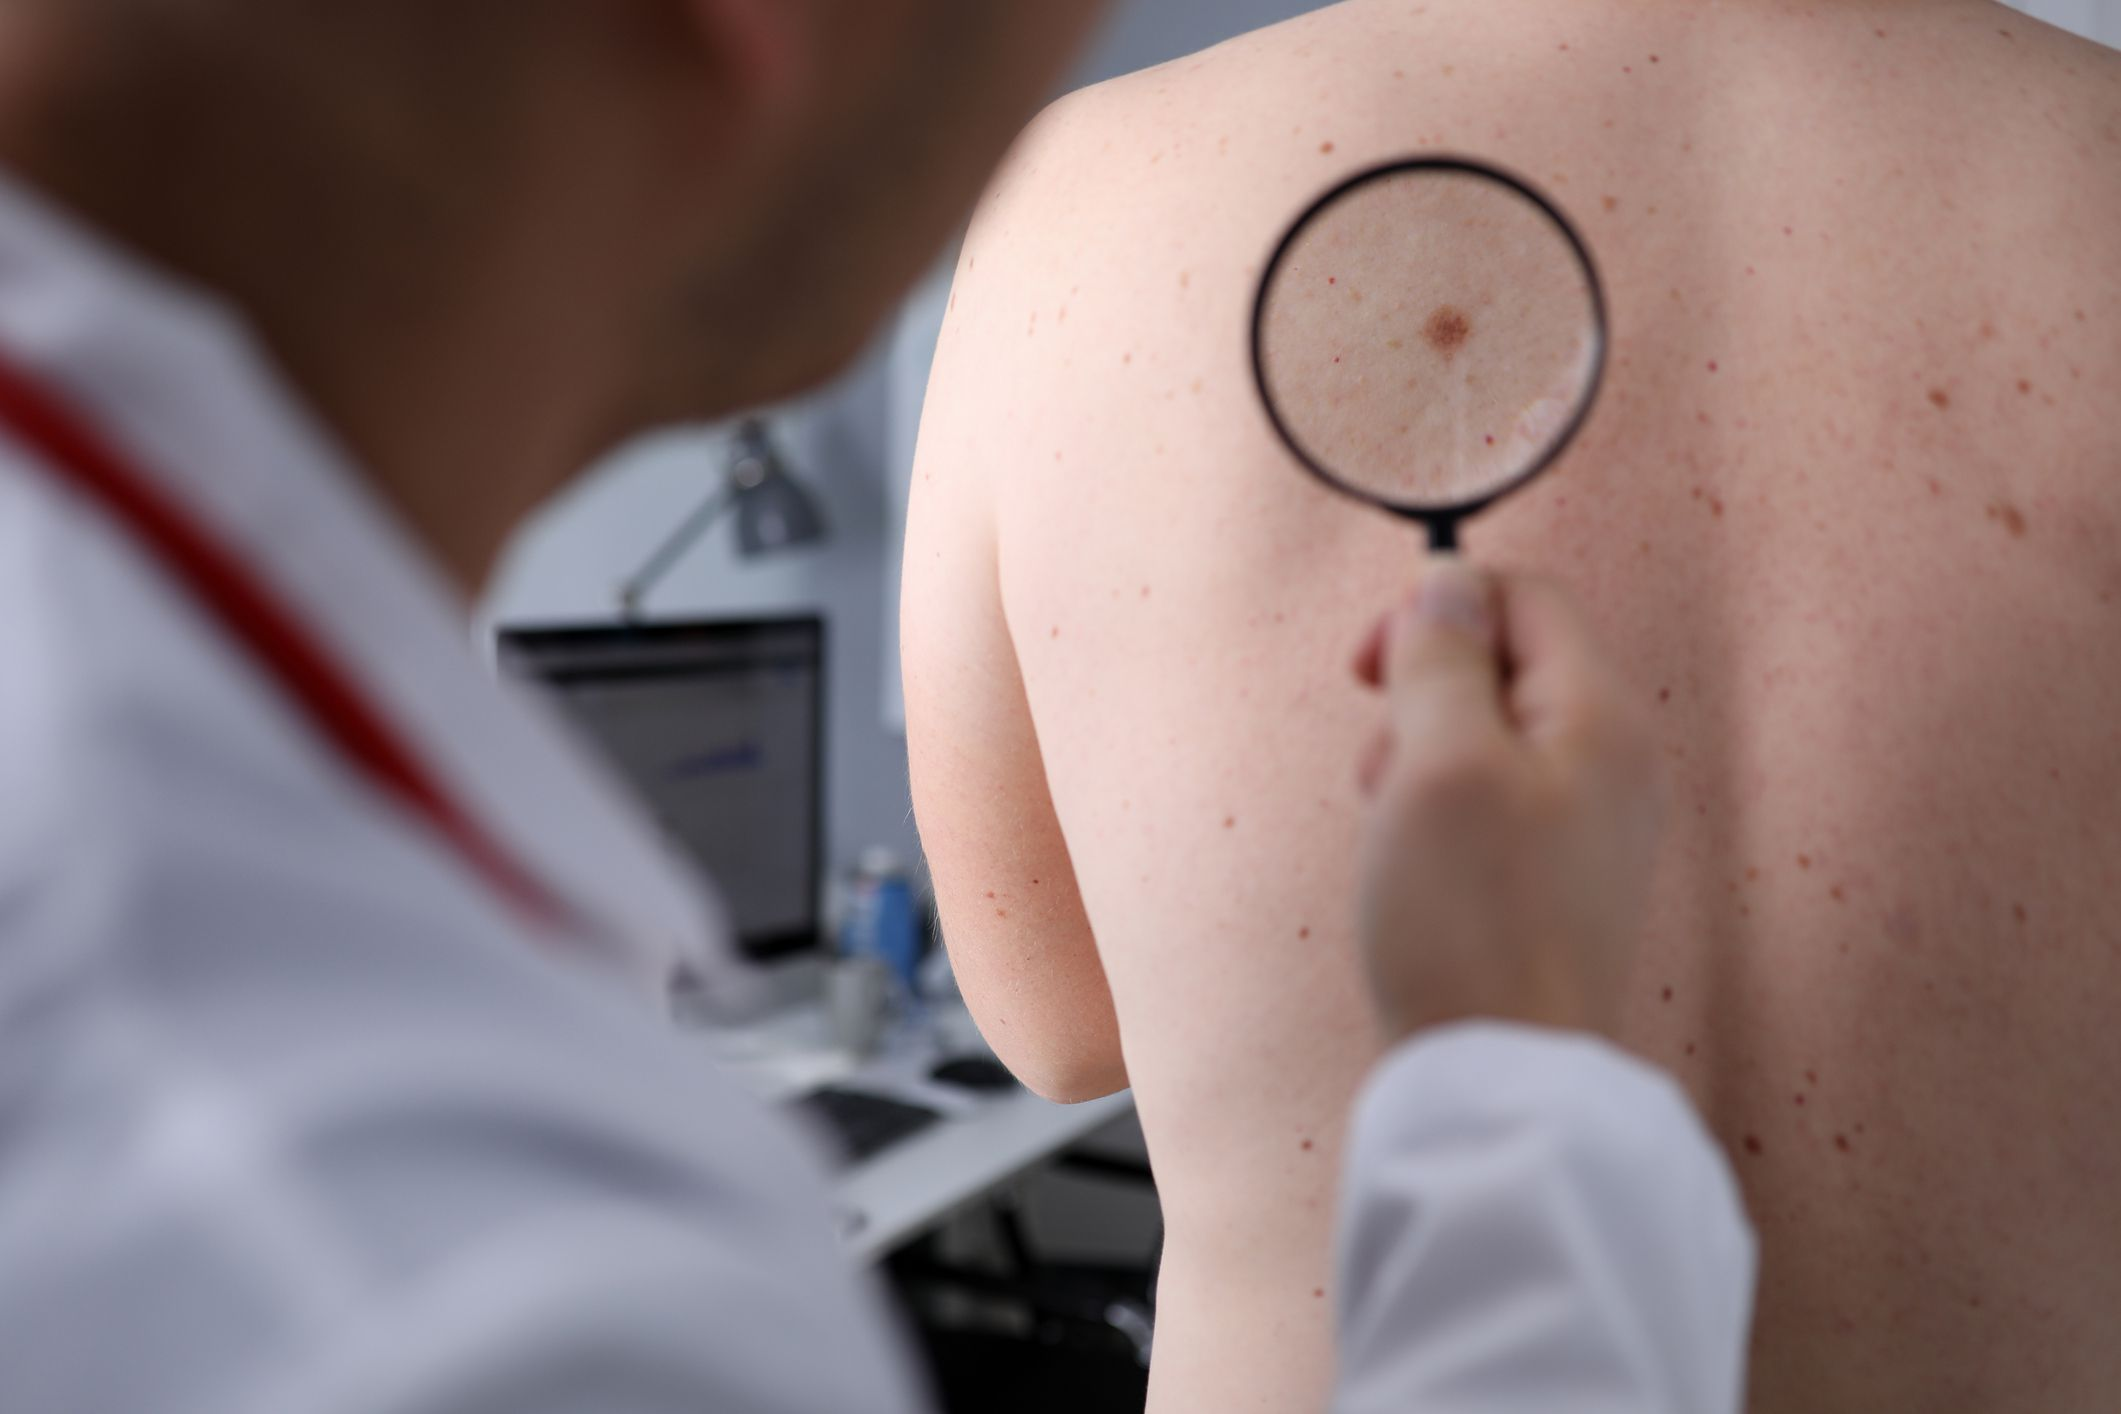 Checking for early signs of skin cancer